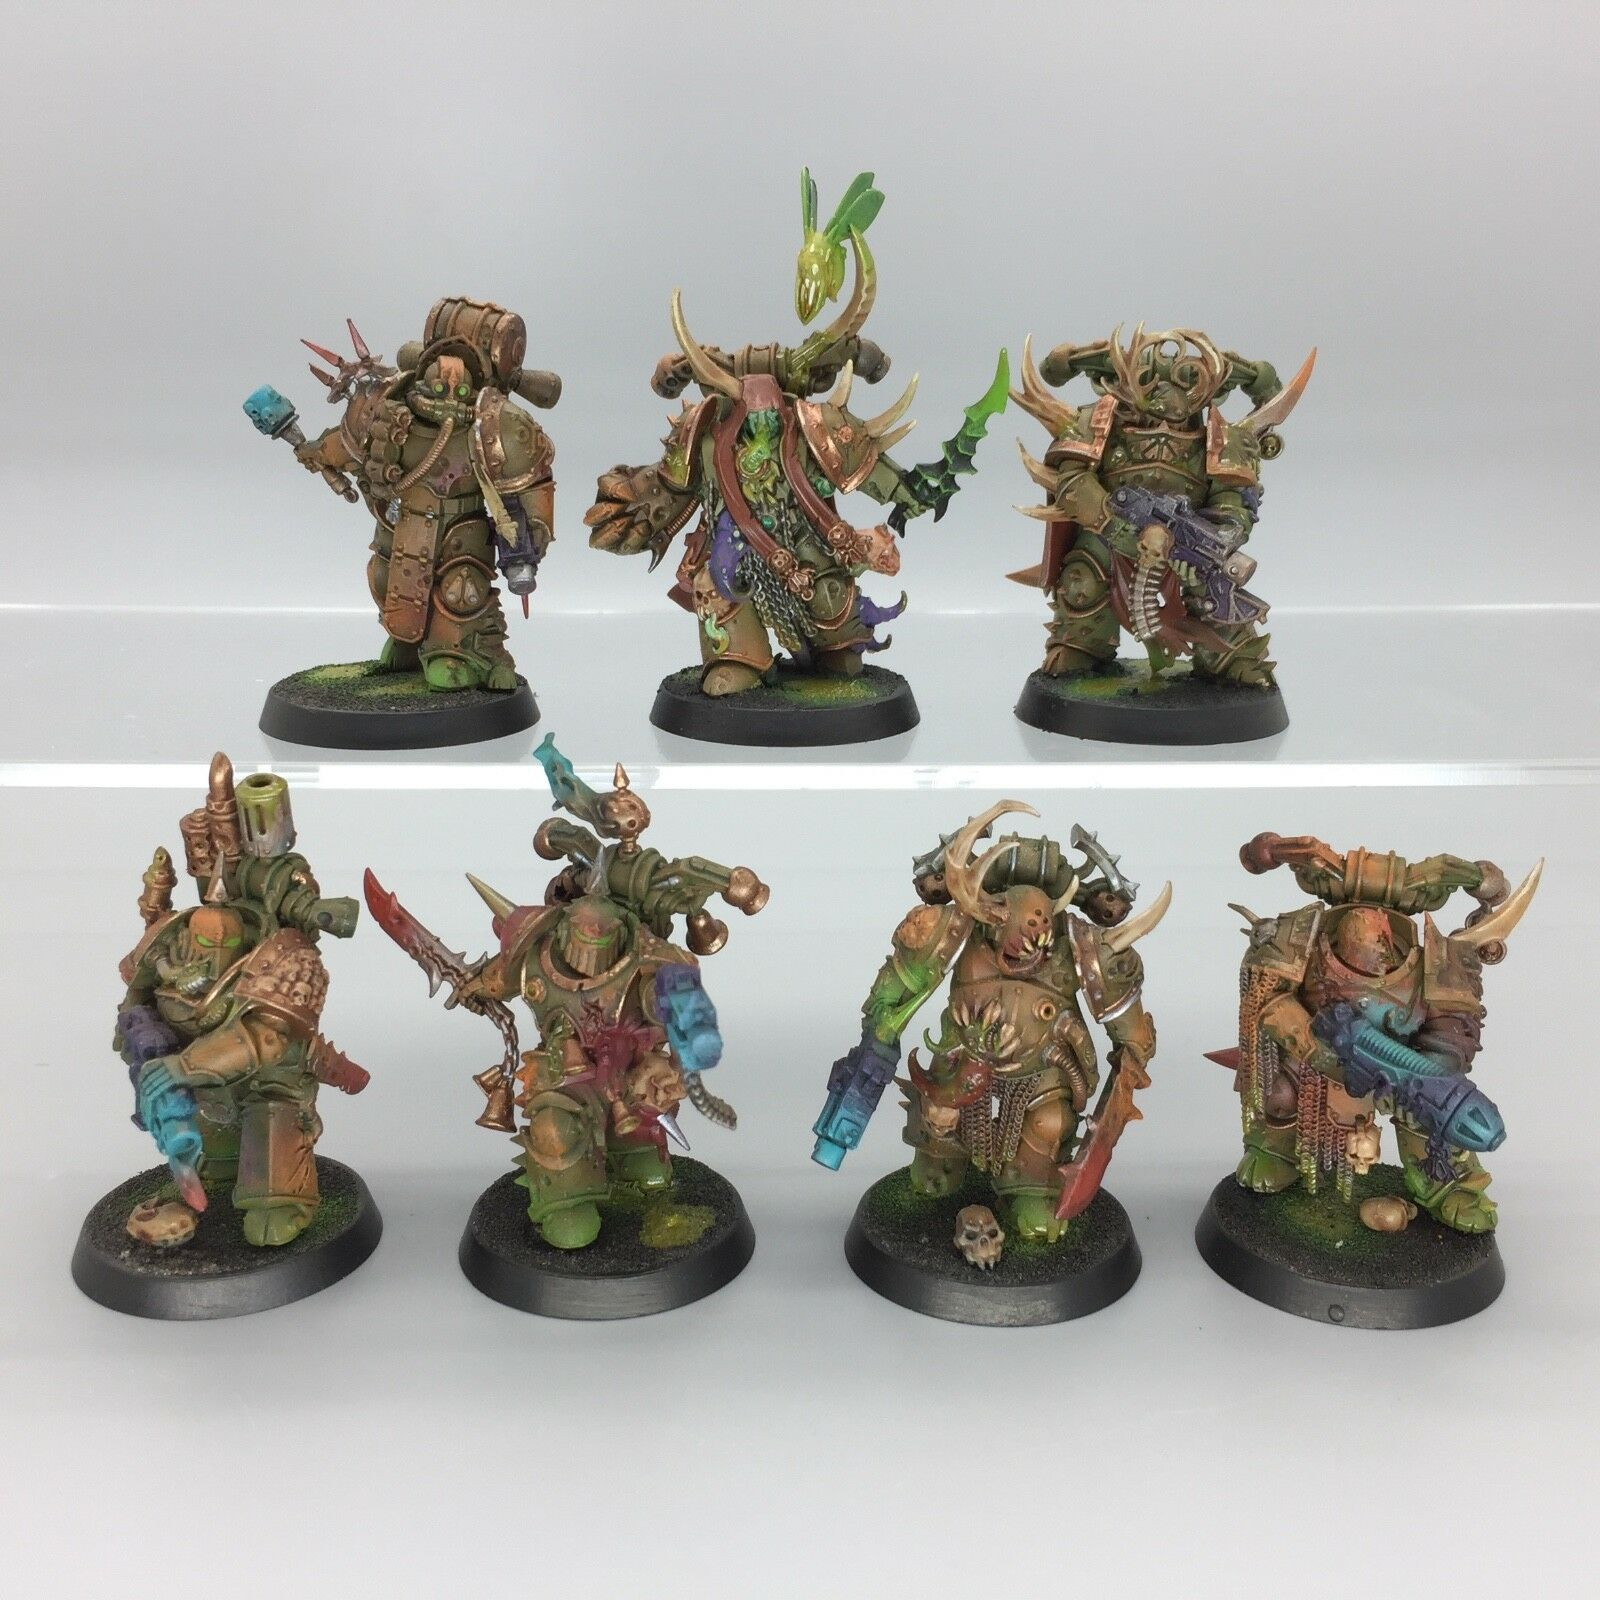 Warhammer 40,000 Chaos Space Marines NURGLE DEATH GUARD Plague Marines painted